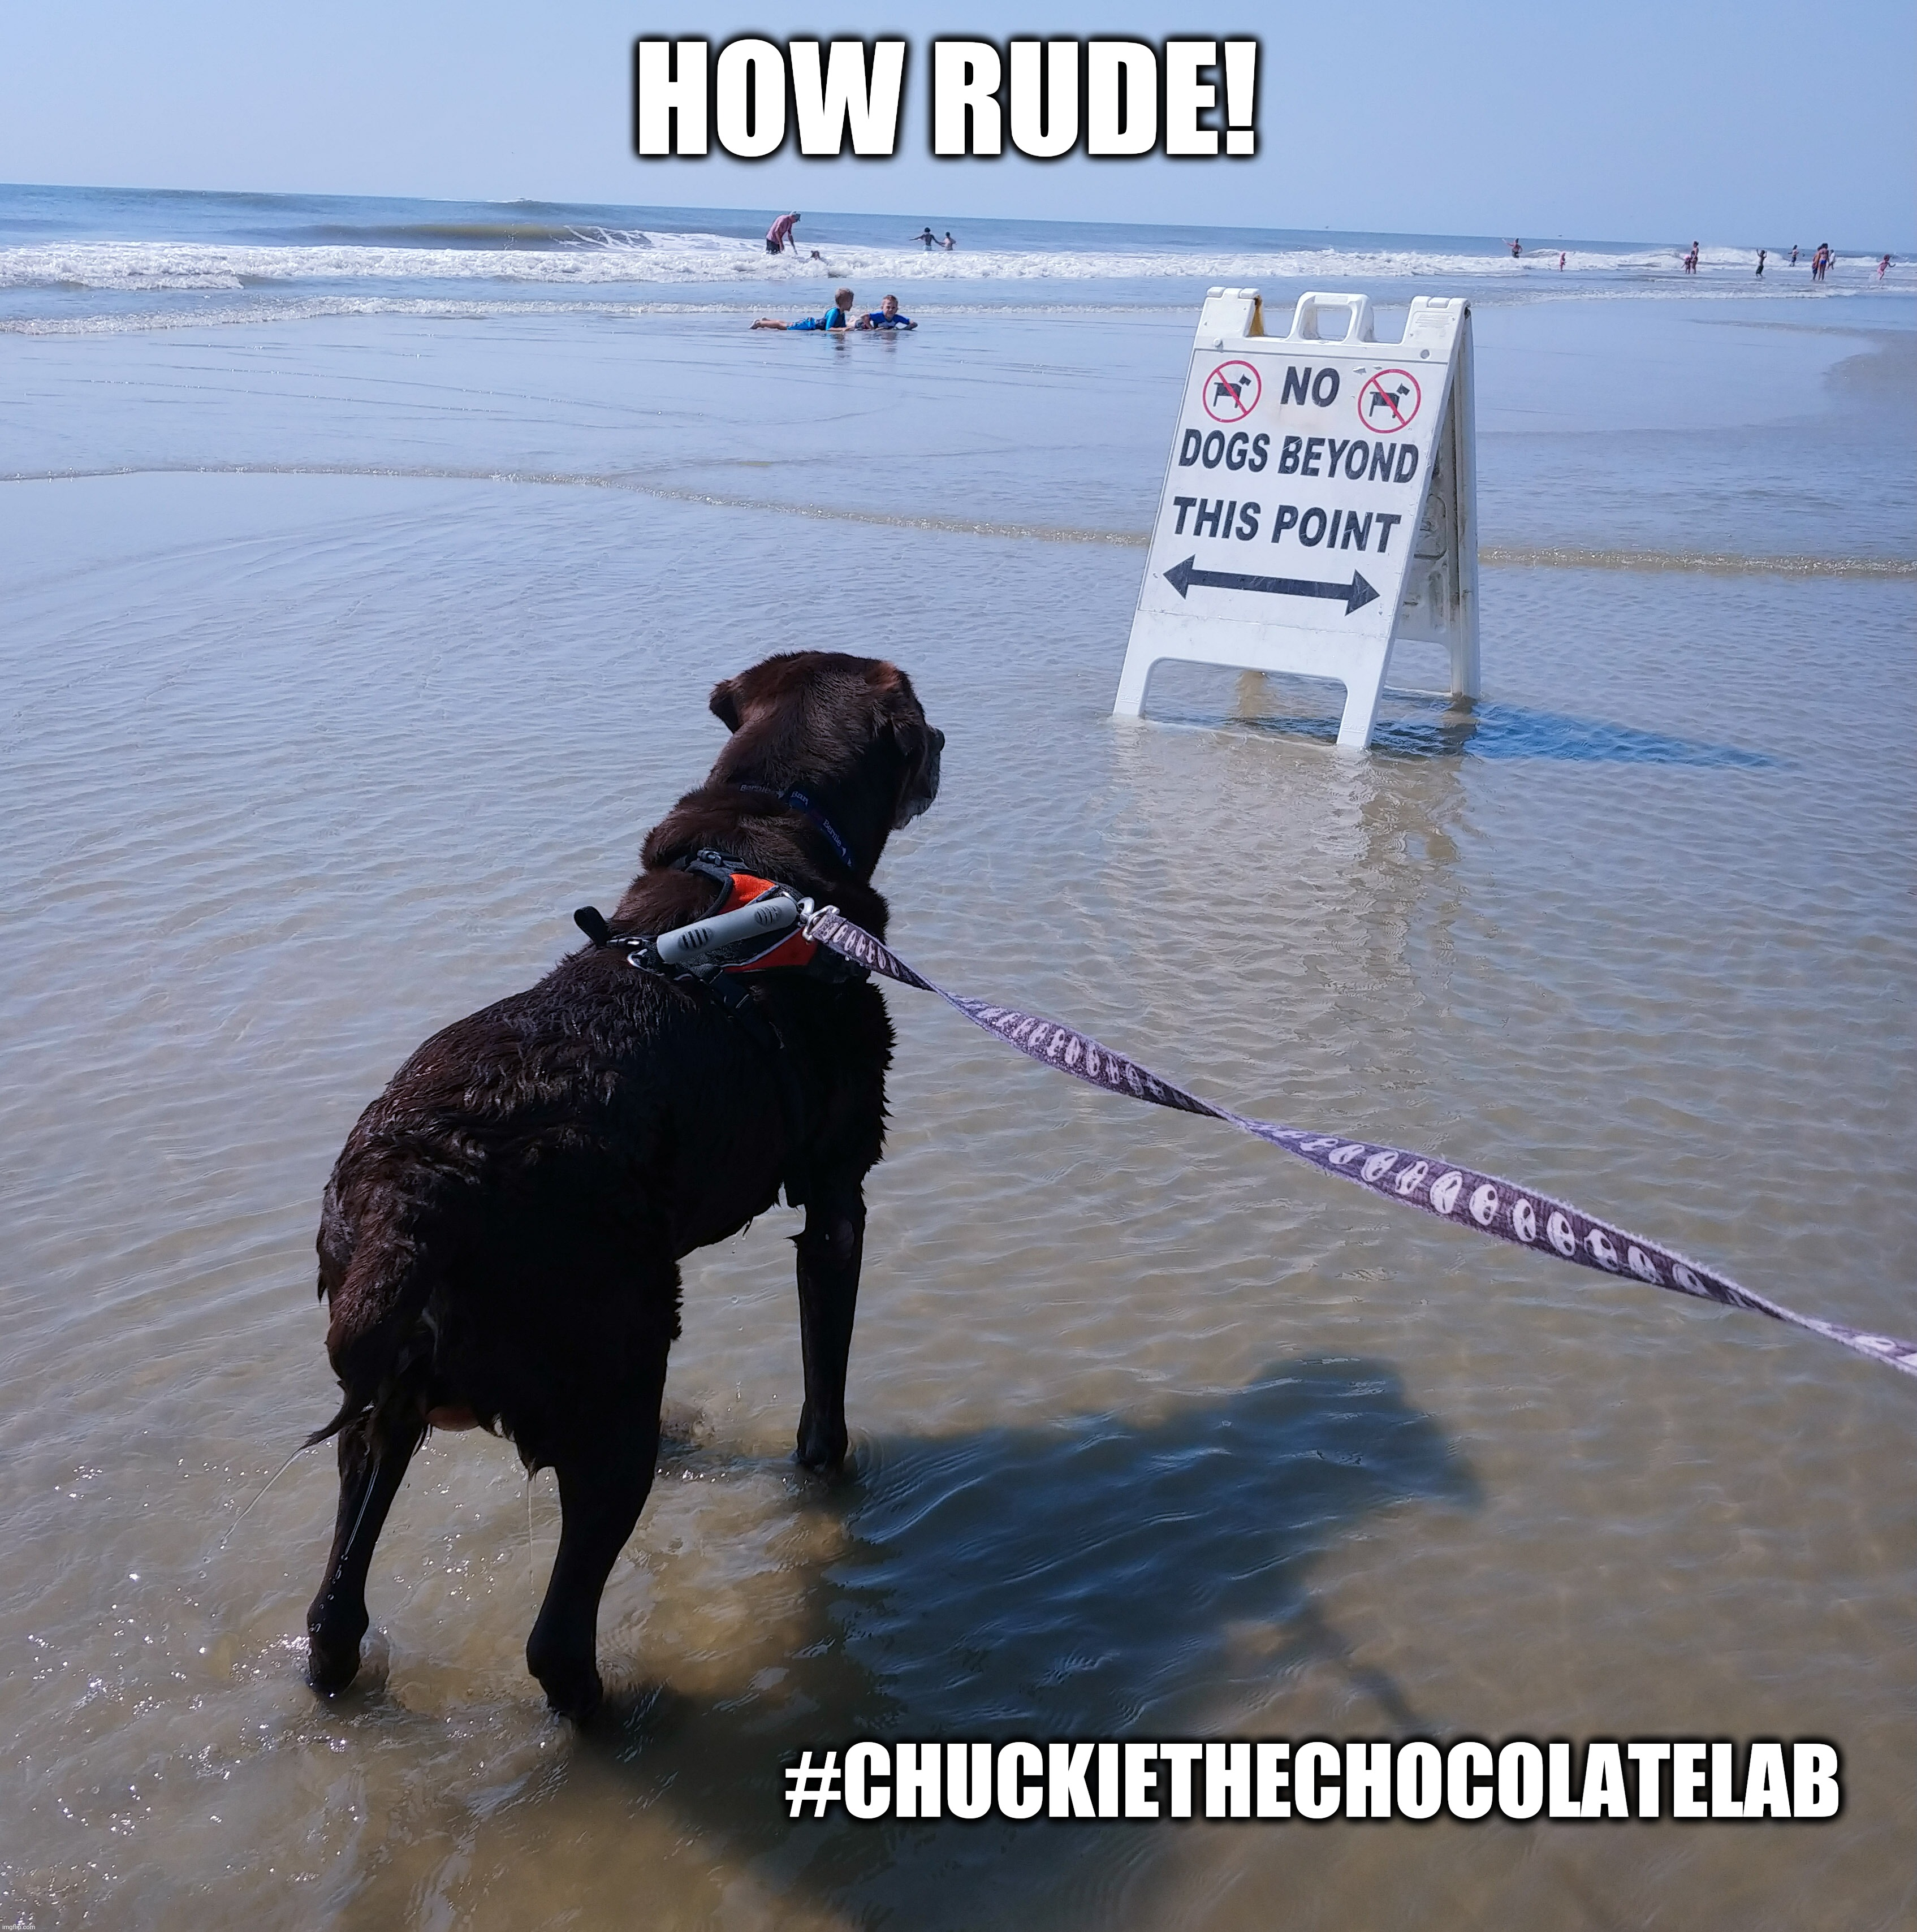 How rude! |  HOW RUDE! #CHUCKIETHECHOCOLATELAB | image tagged in chuckie the chocolate lab,how rude,beach,dogs,funny,memes | made w/ Imgflip meme maker